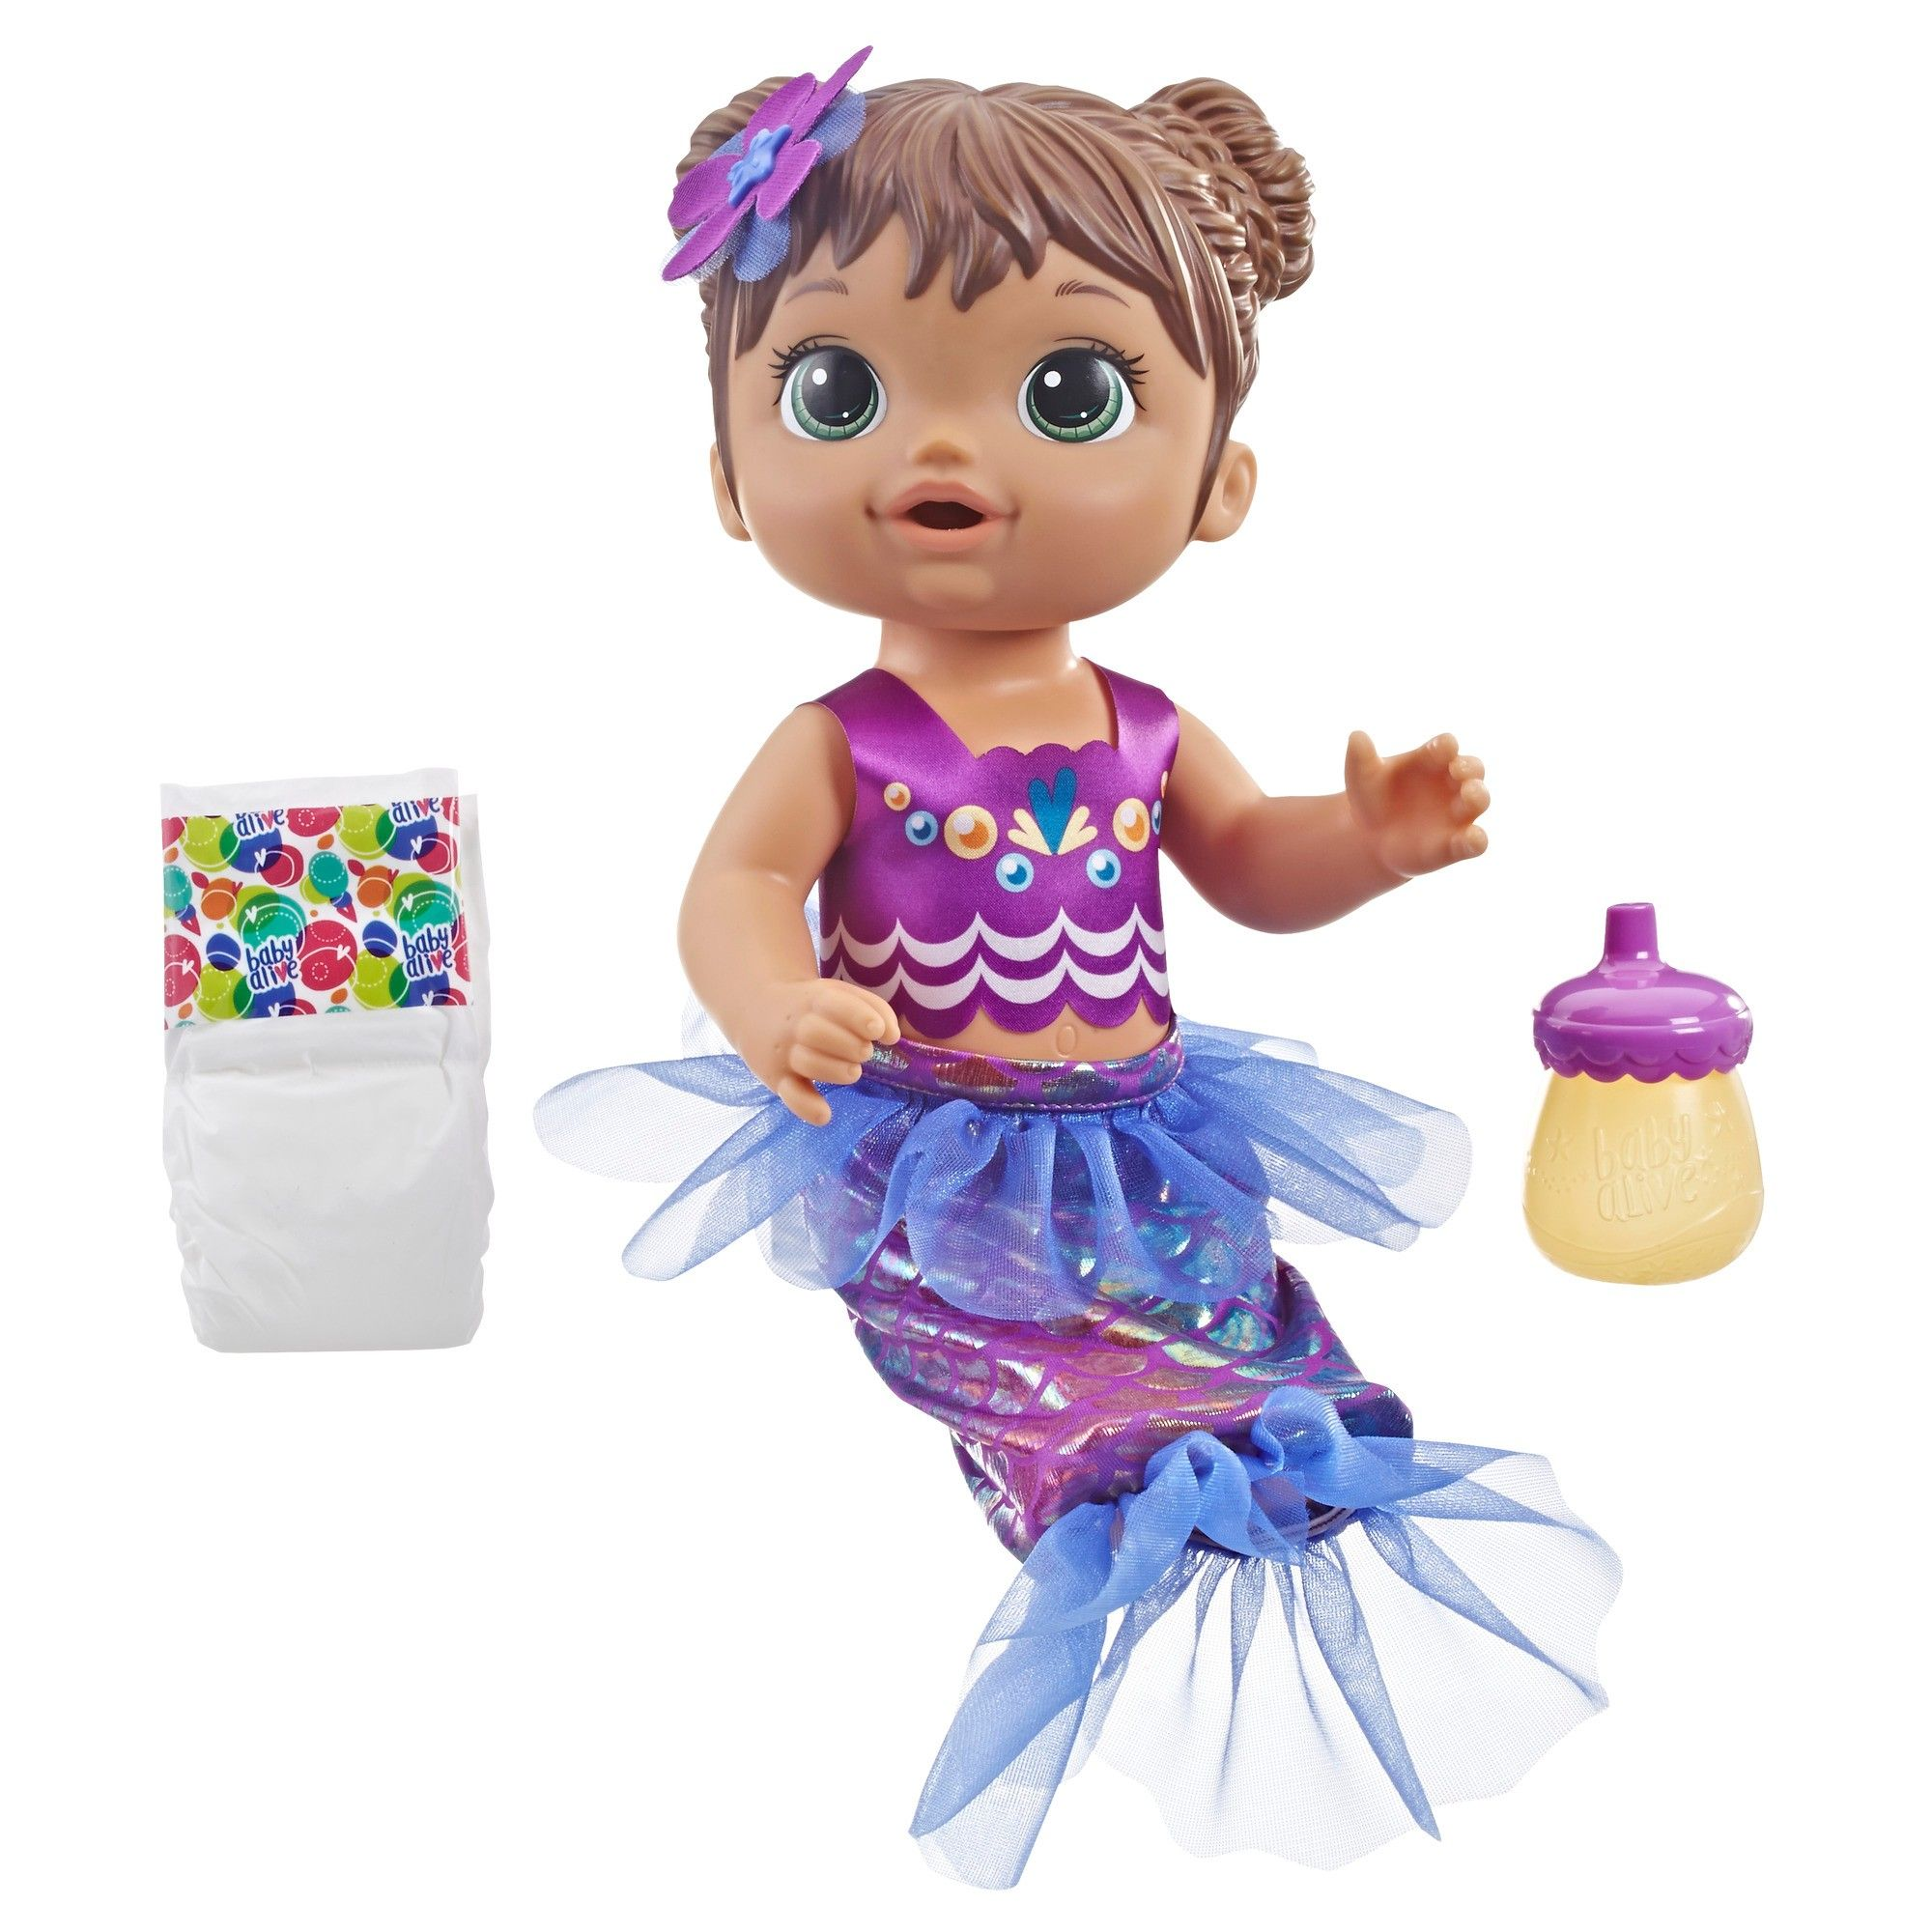 Baby Alive Shimmer 'n Splash Mermaid Baby Doll Brown